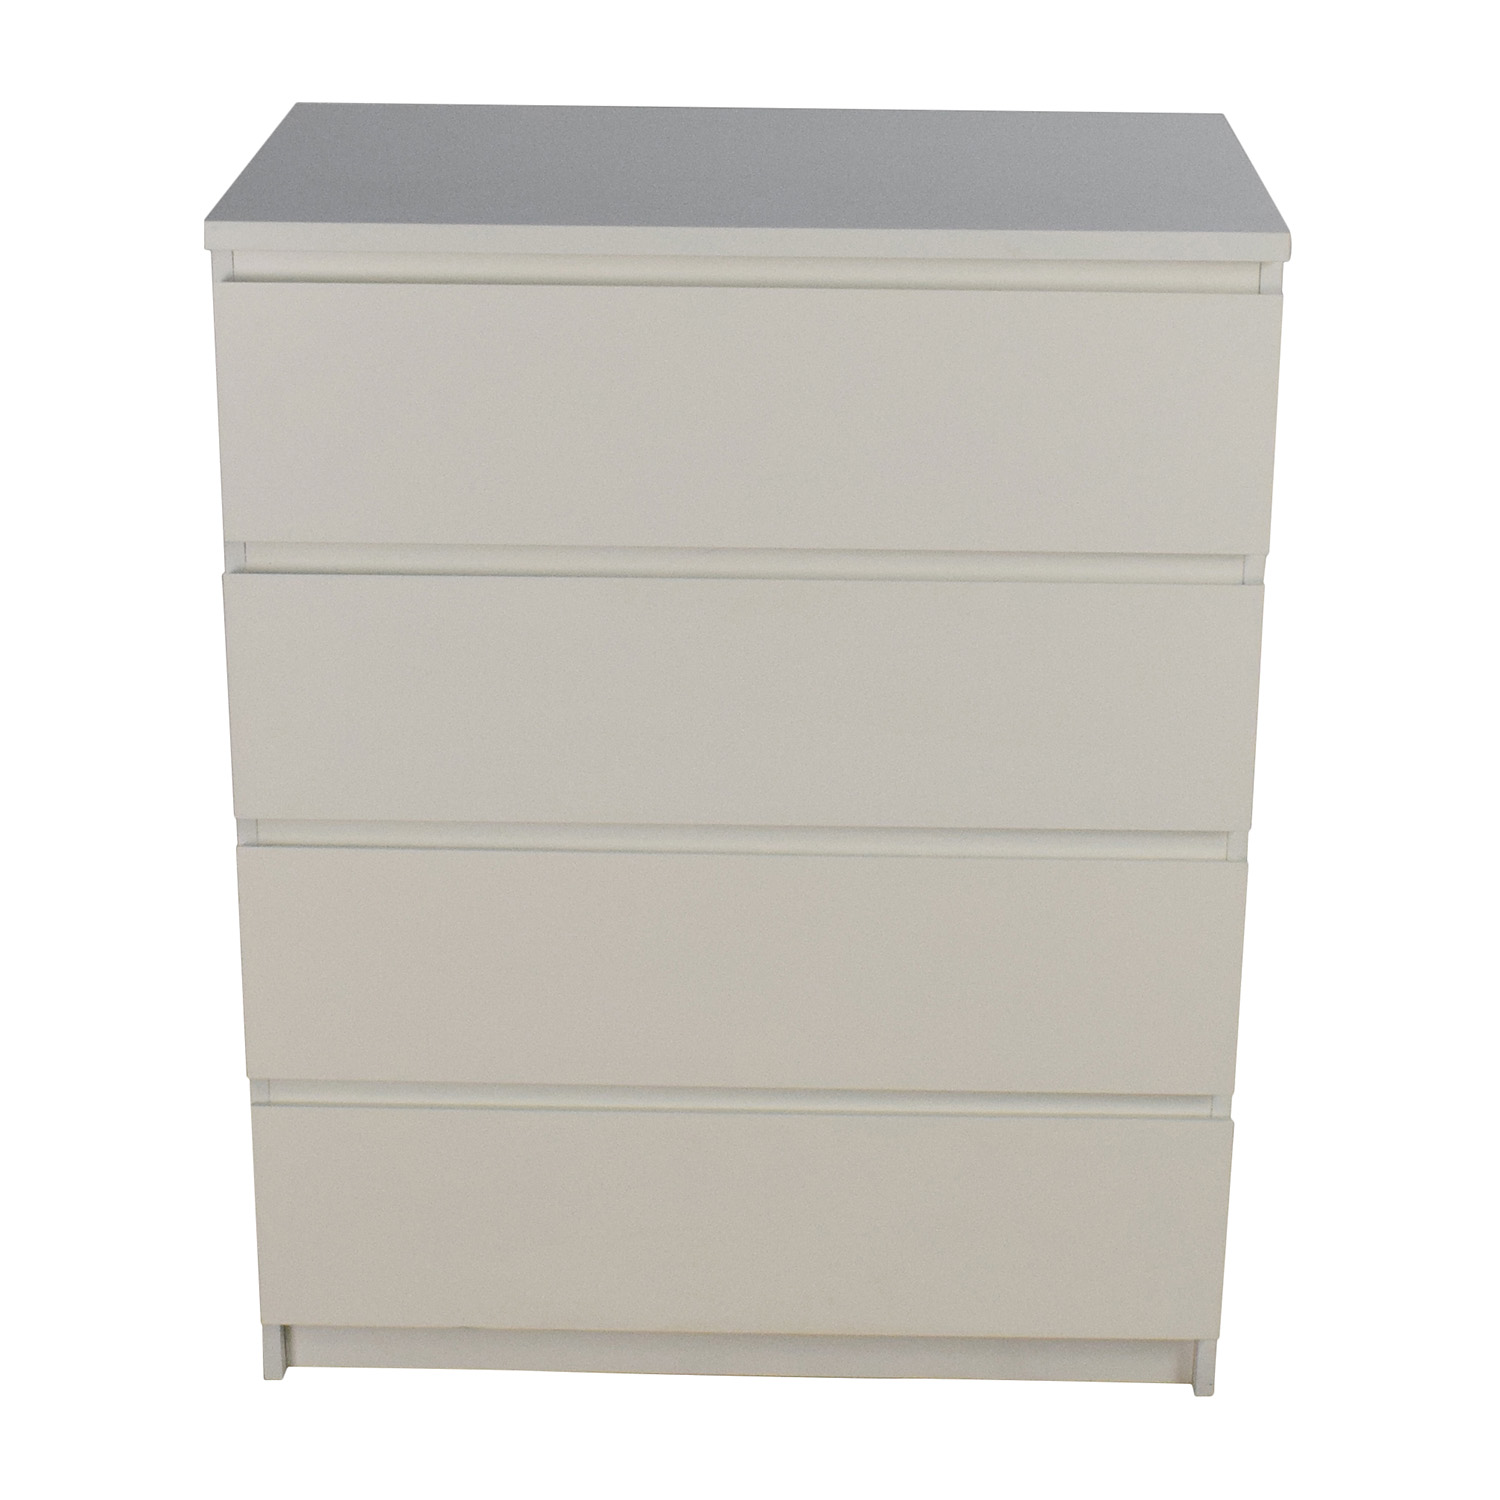 IKEA IKEA MALM 4-Drawer Dresser second hand